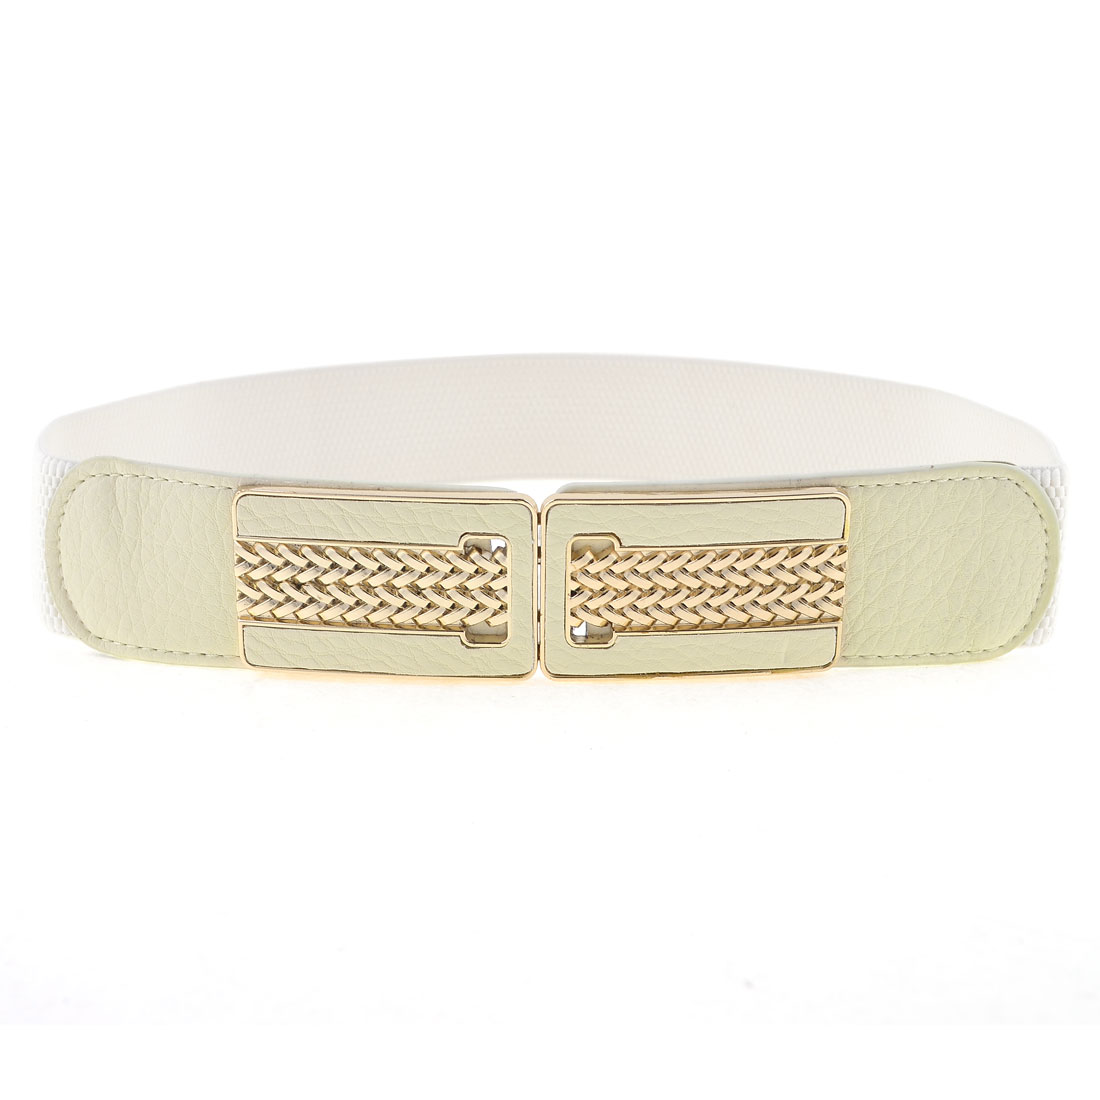 Lady 3.8cm Wide Rectangle Shape Interlock Buckle Elastic Cinch Belt Off White